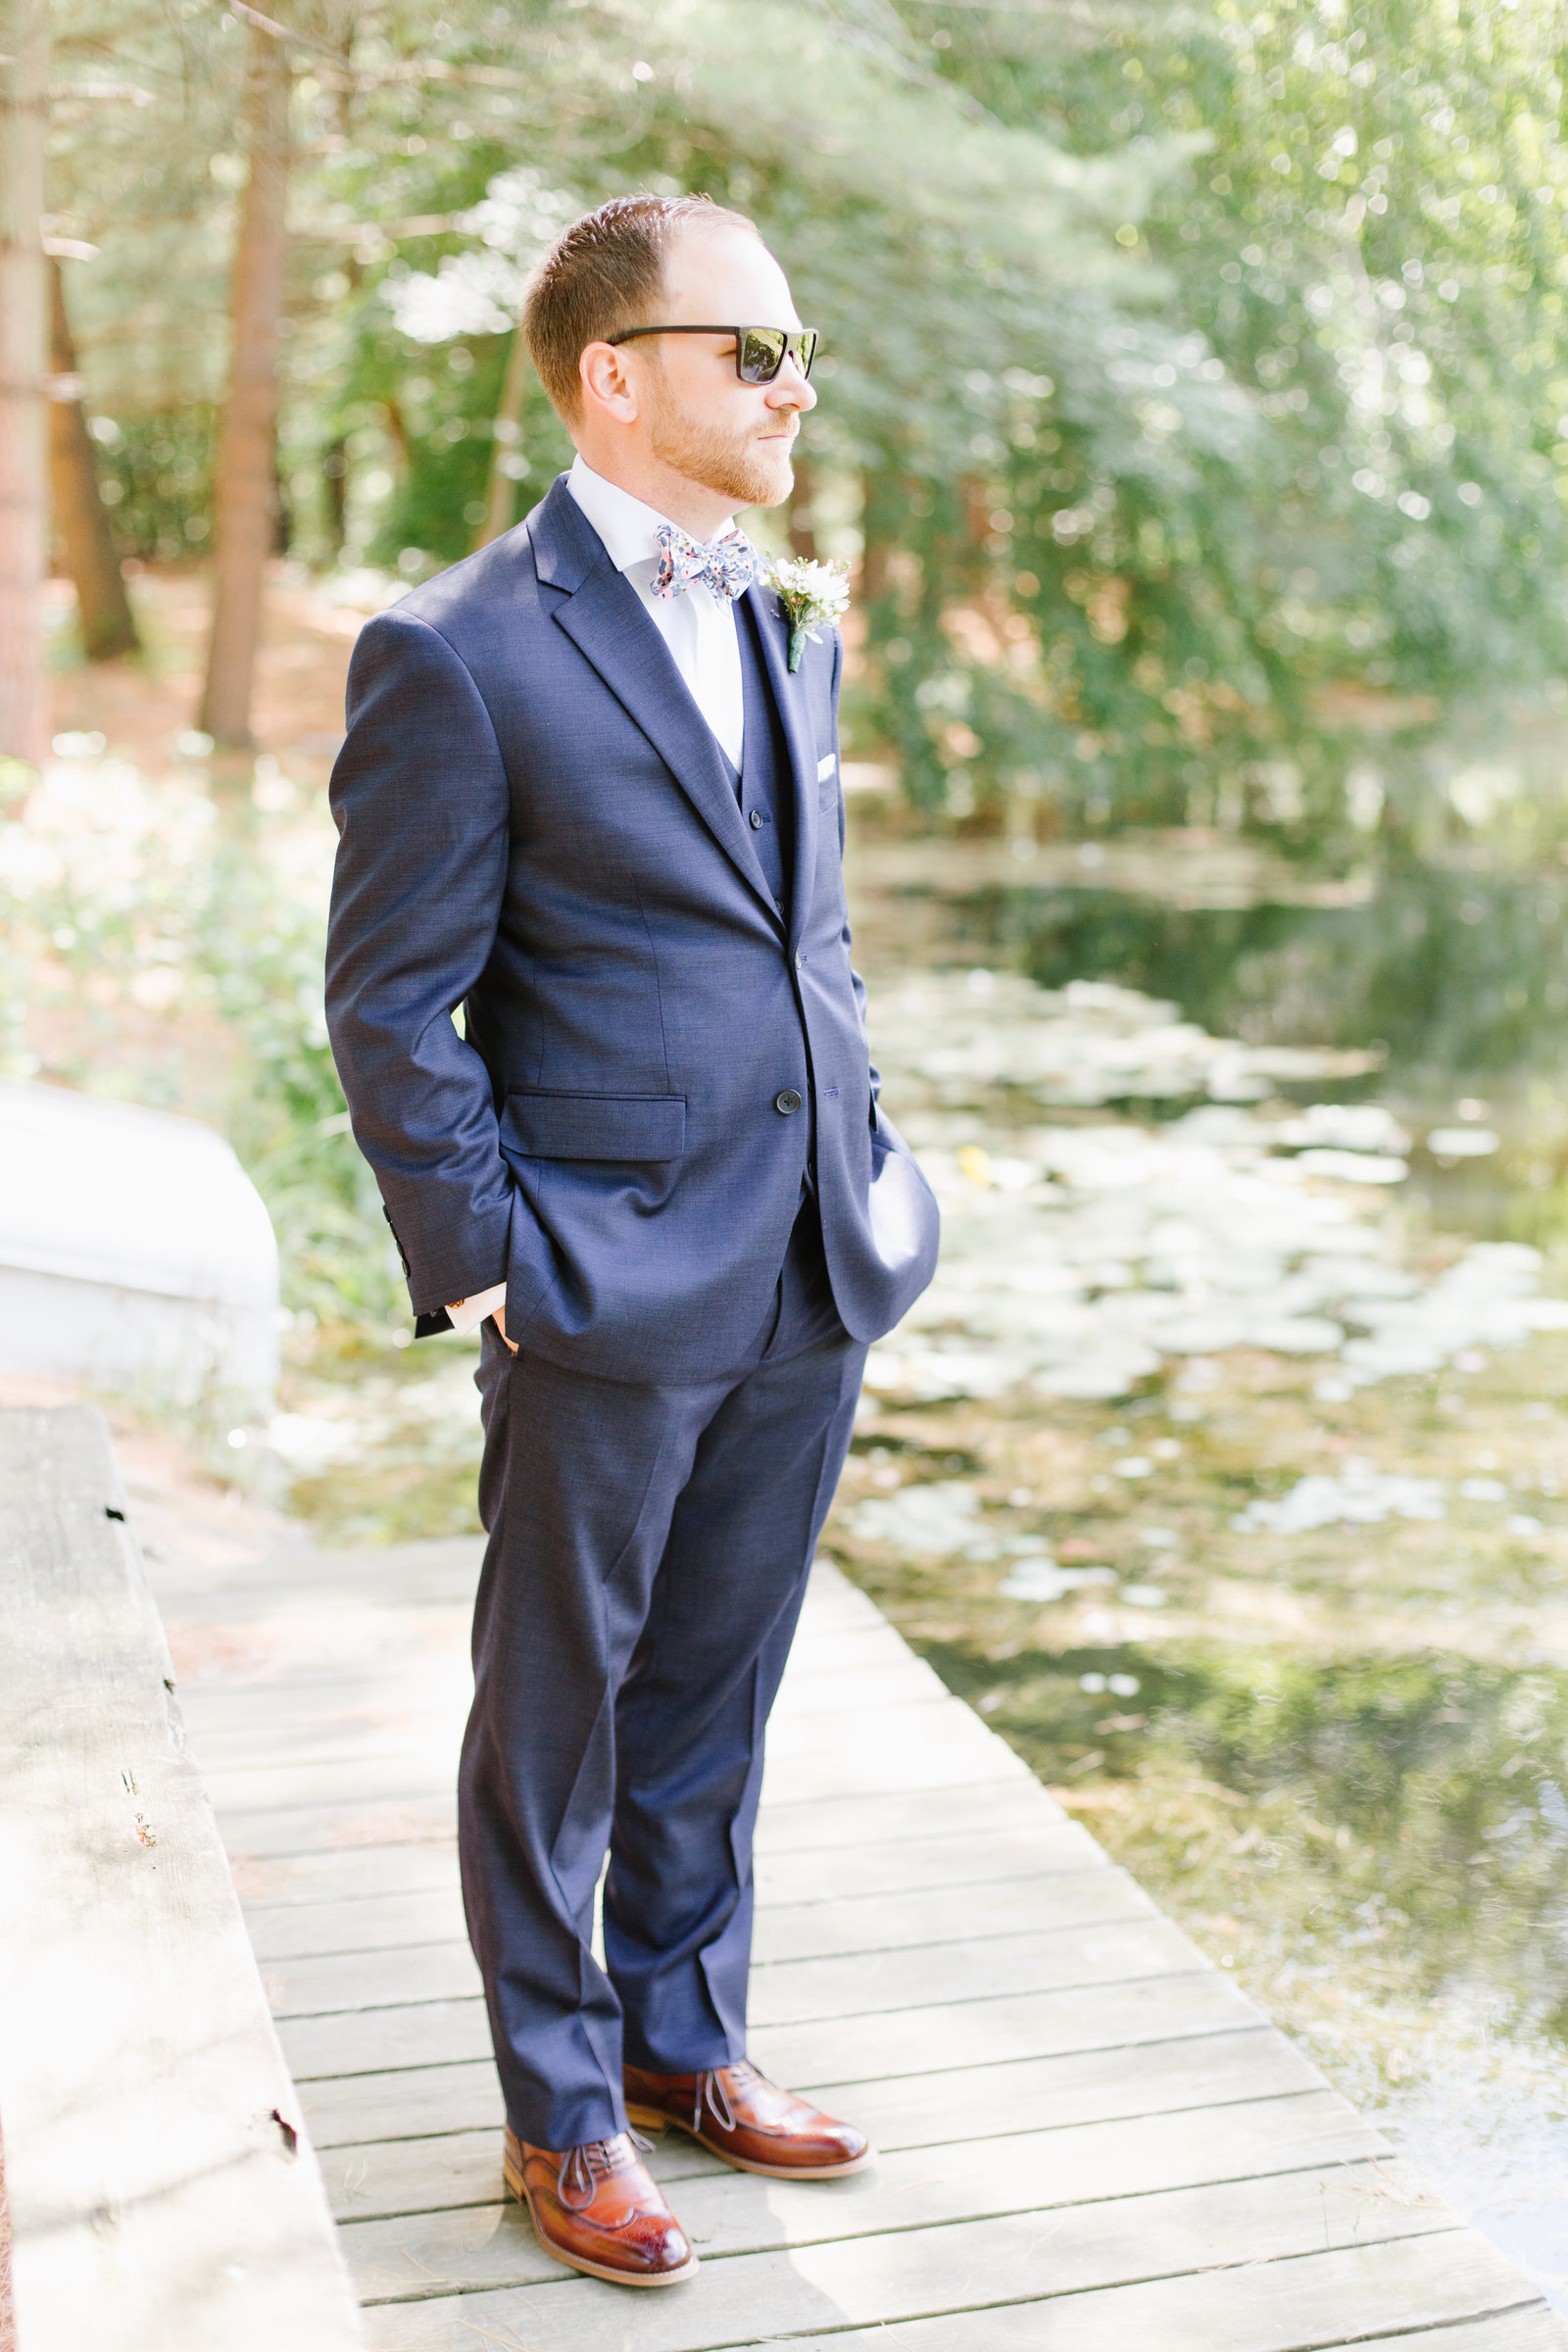 groom-portrait-Pats-30-Acres-Wedding-Photographer-JDMP-27